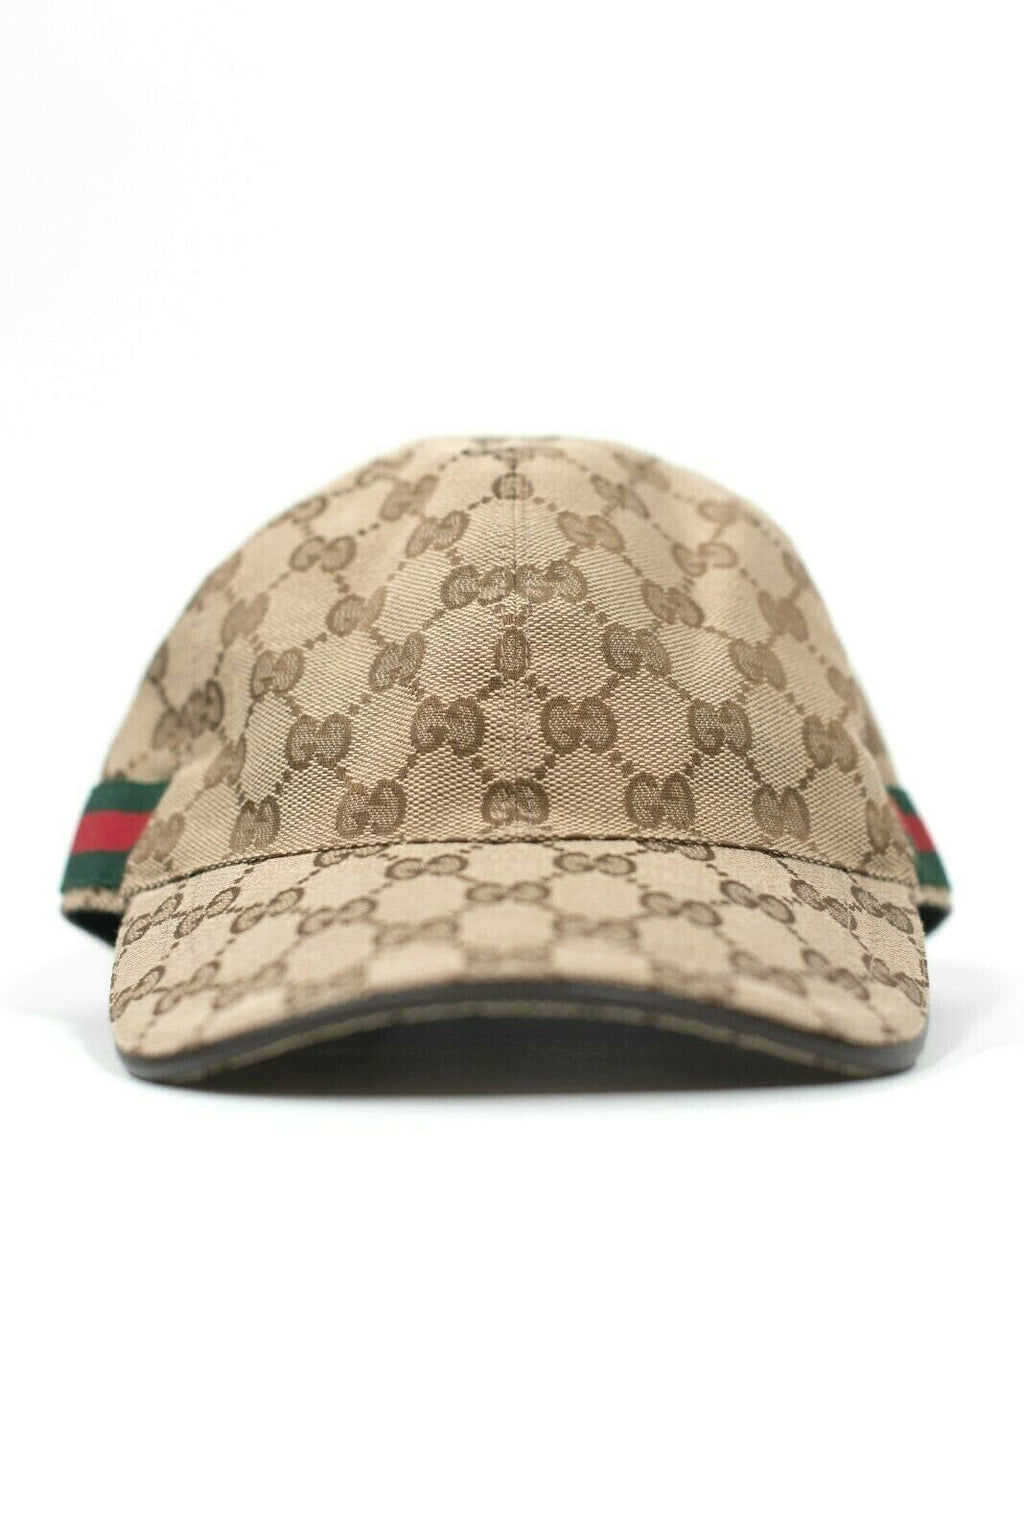 Gucci M Brown Hat Authentic Original GG Canvas Monogram Baseball Hat Web $485